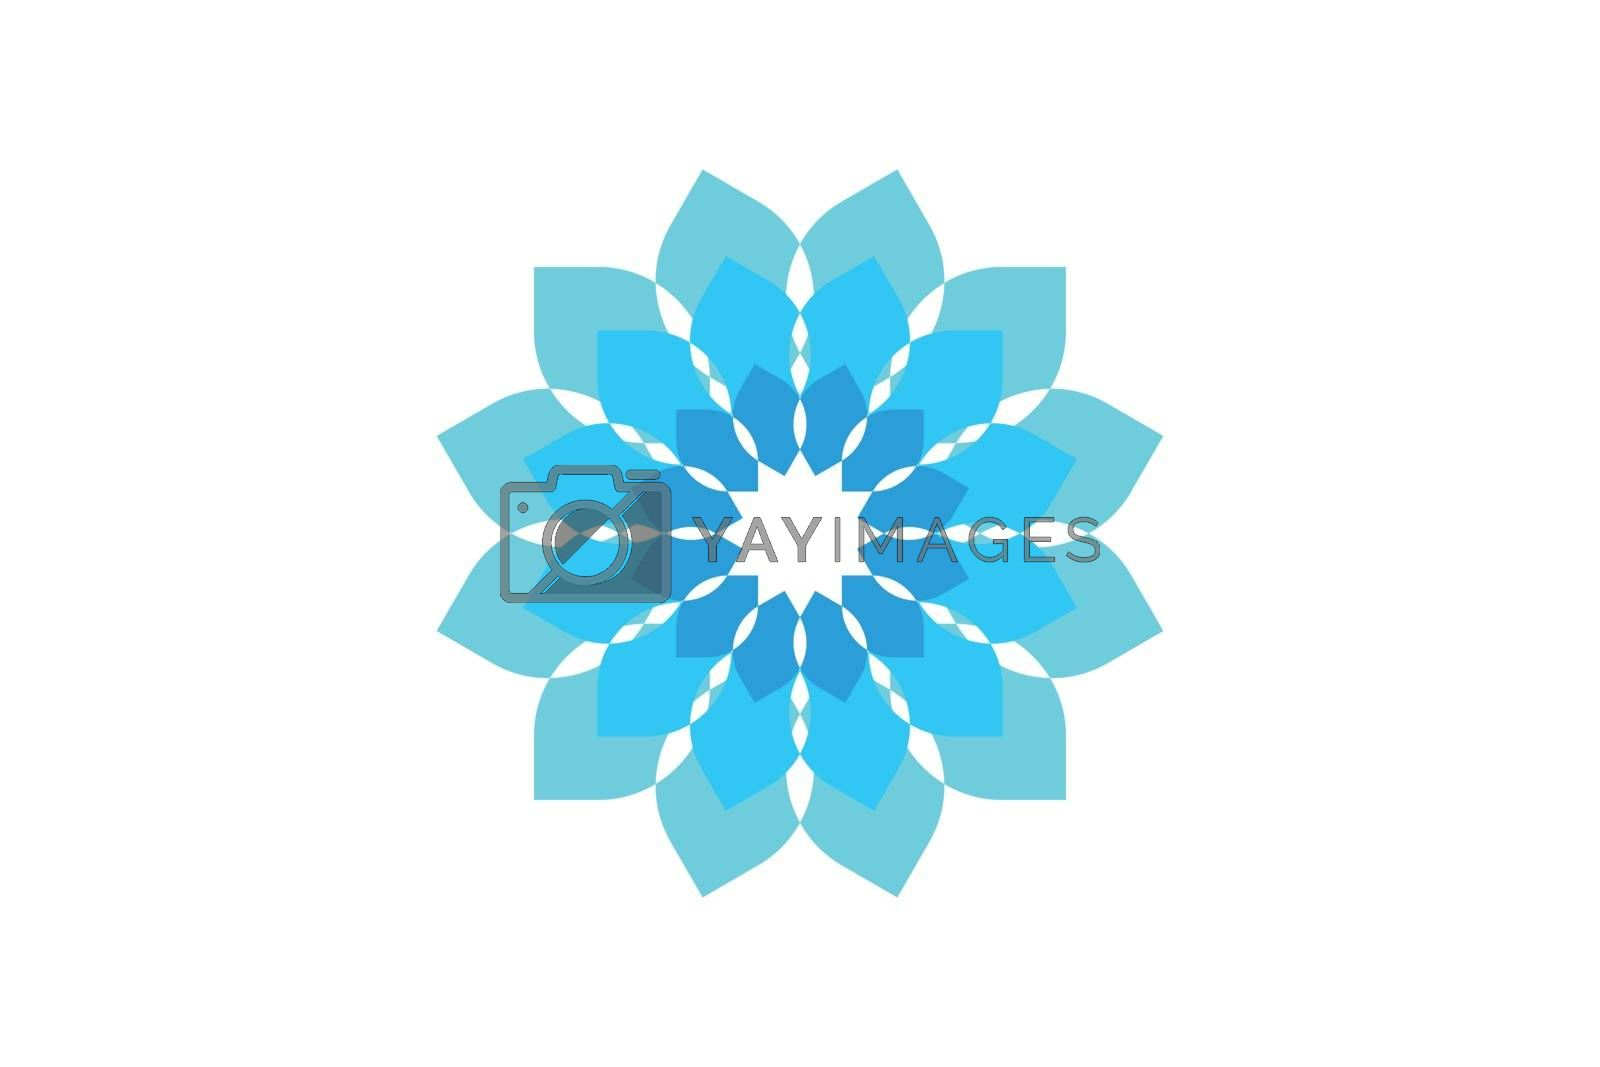 abstract flower logo Designs Inspiration Isolated on White Background by wangsinawang